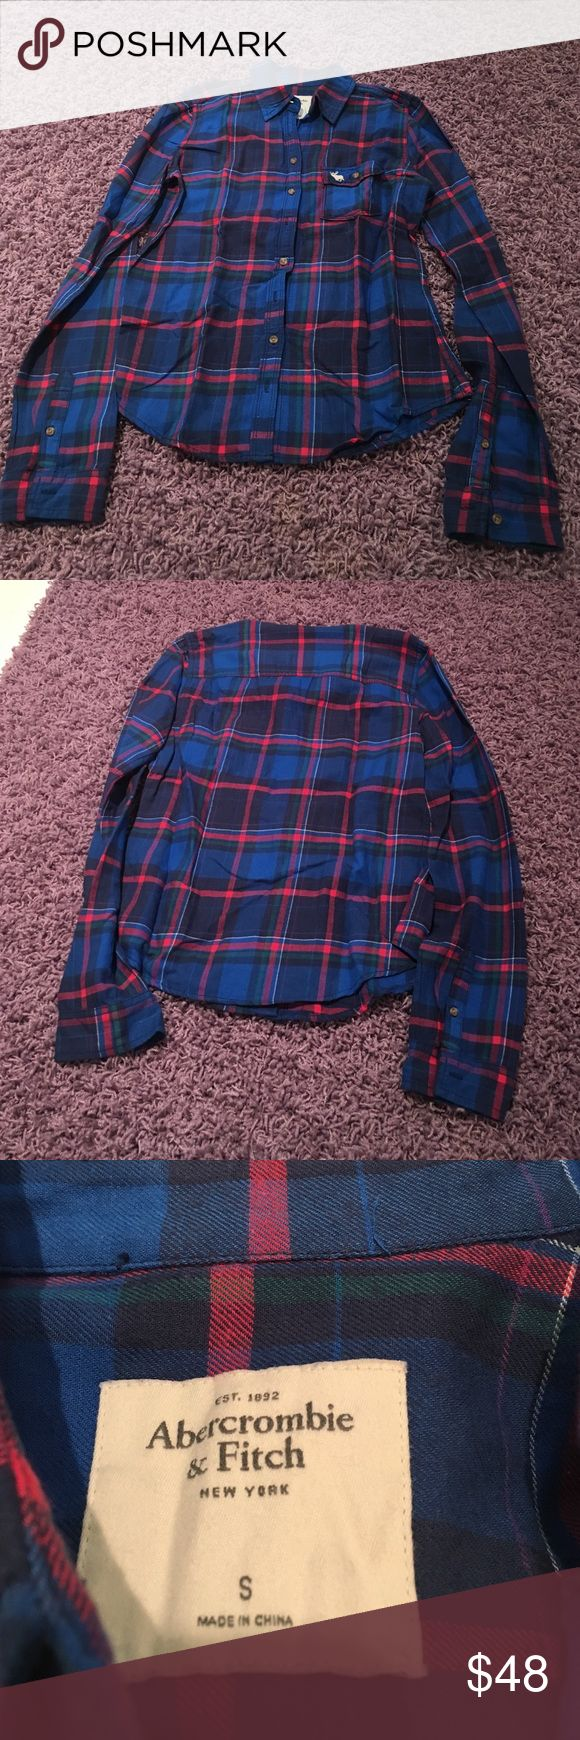 Plaid shirt Women's plaid blue and red top. In great condition. Never worn. Abercrombie & Fitch Tops Button Down Shirts